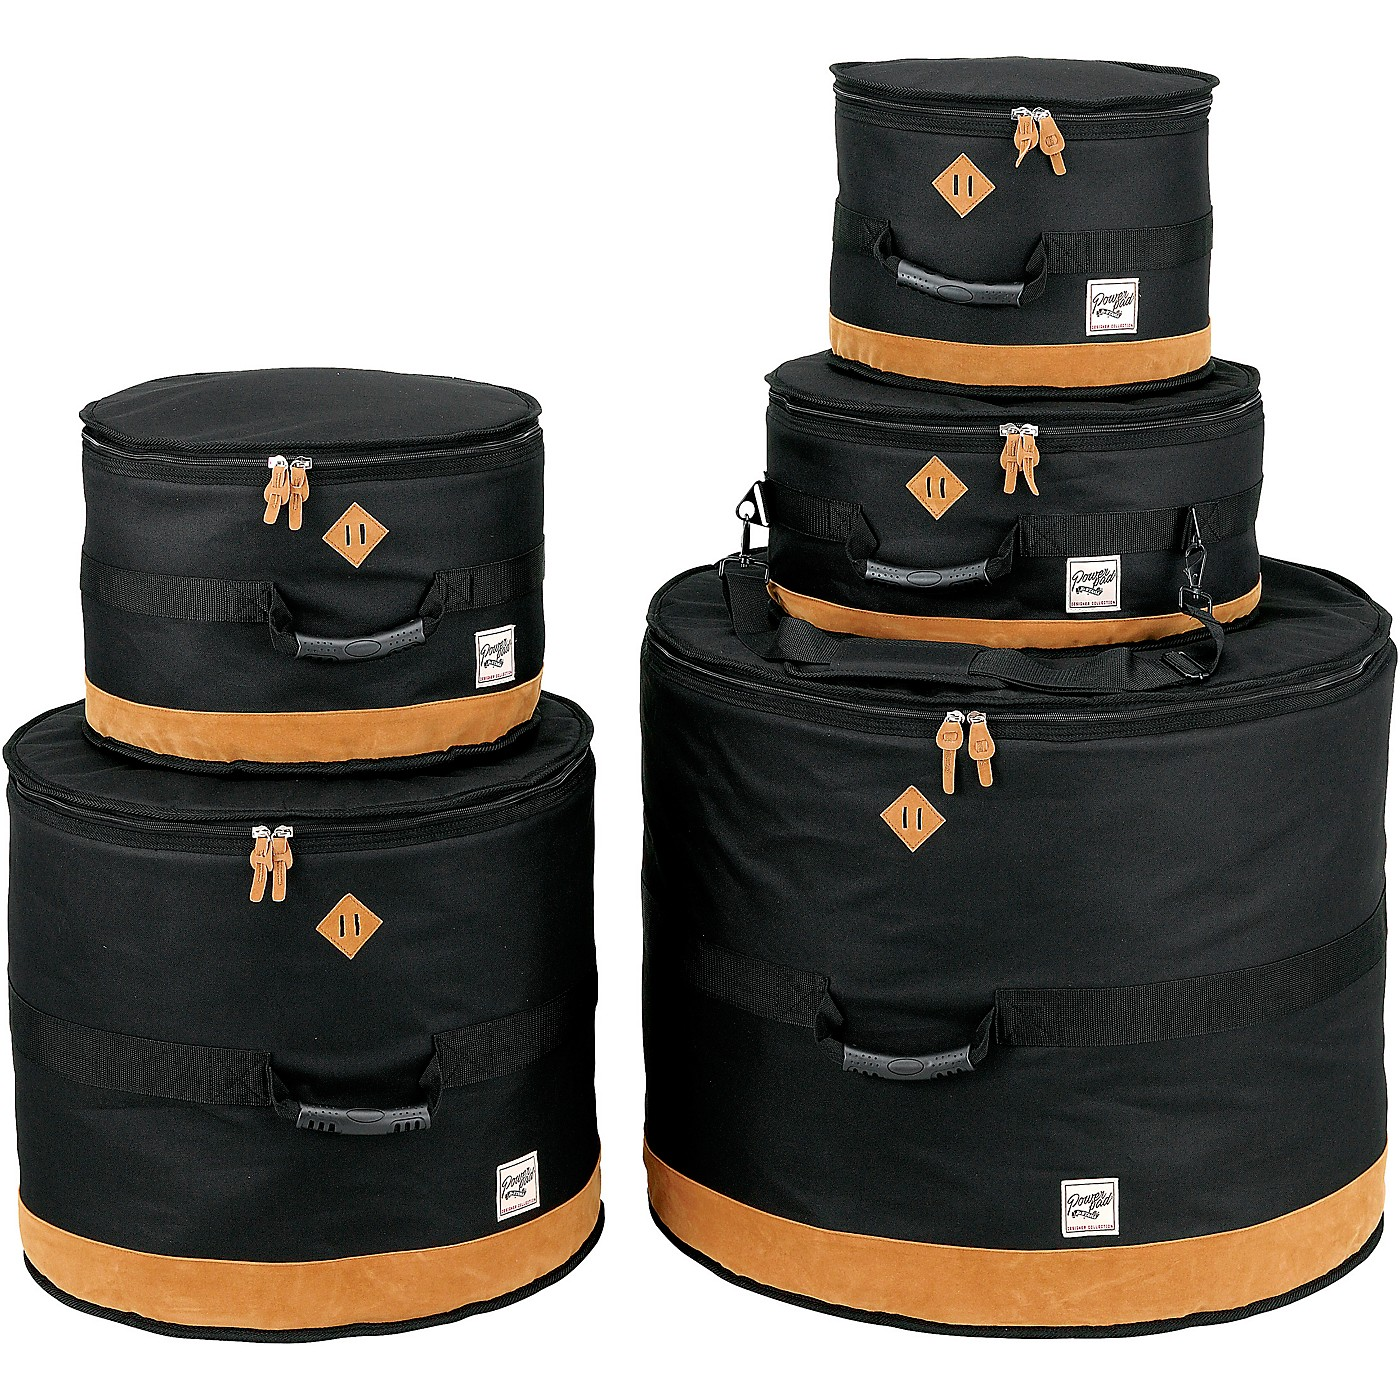 TAMA Power Pad Designer Collection Drum Bag Set for 5pc Drum Kit with 22